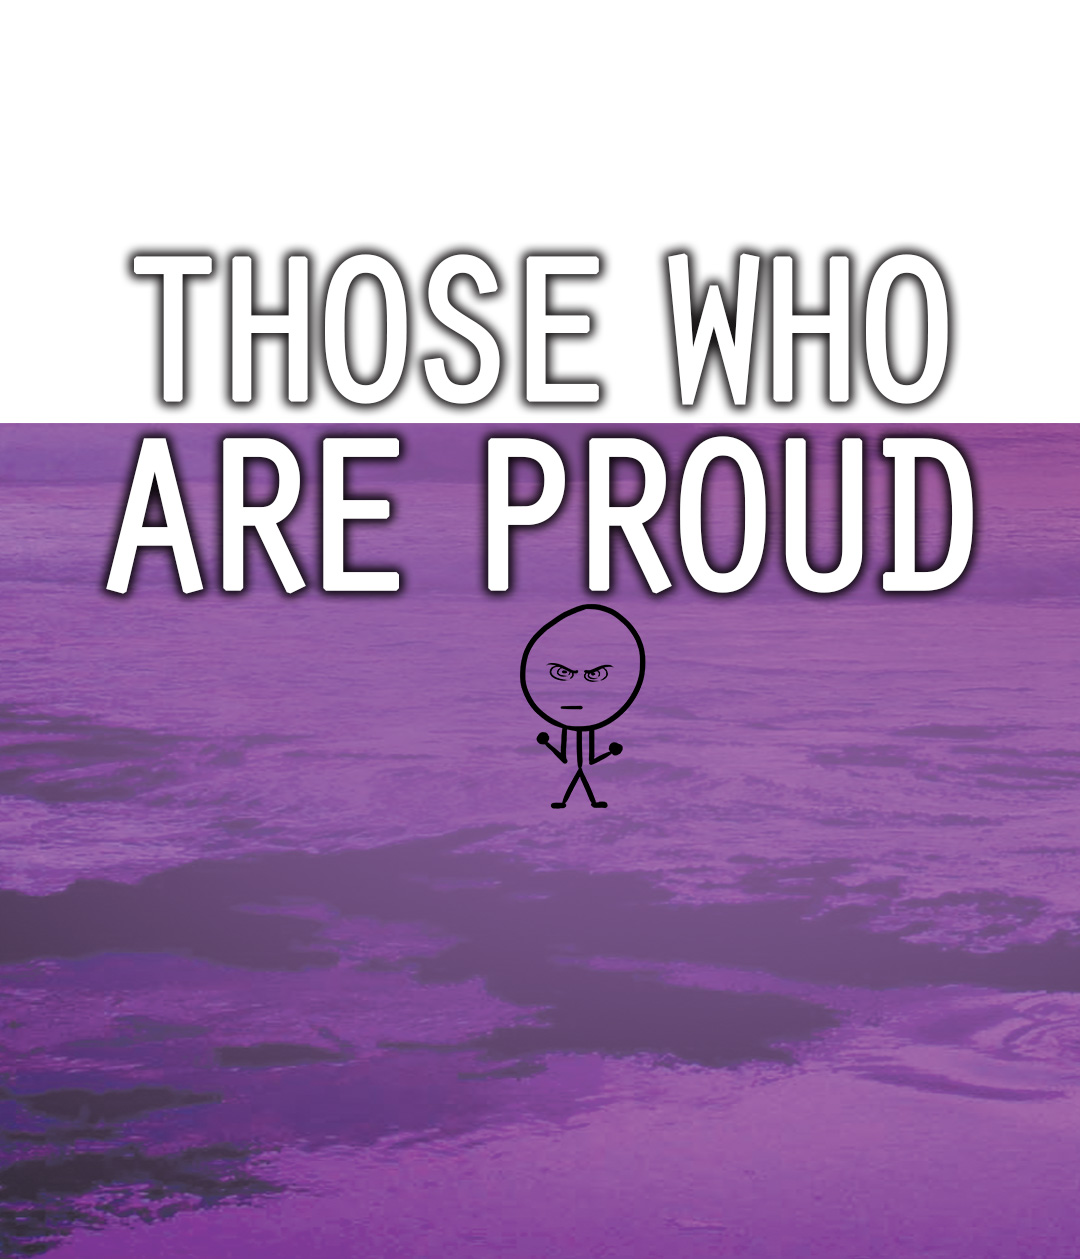 Those Who Are Proud - Those Who Are Proud